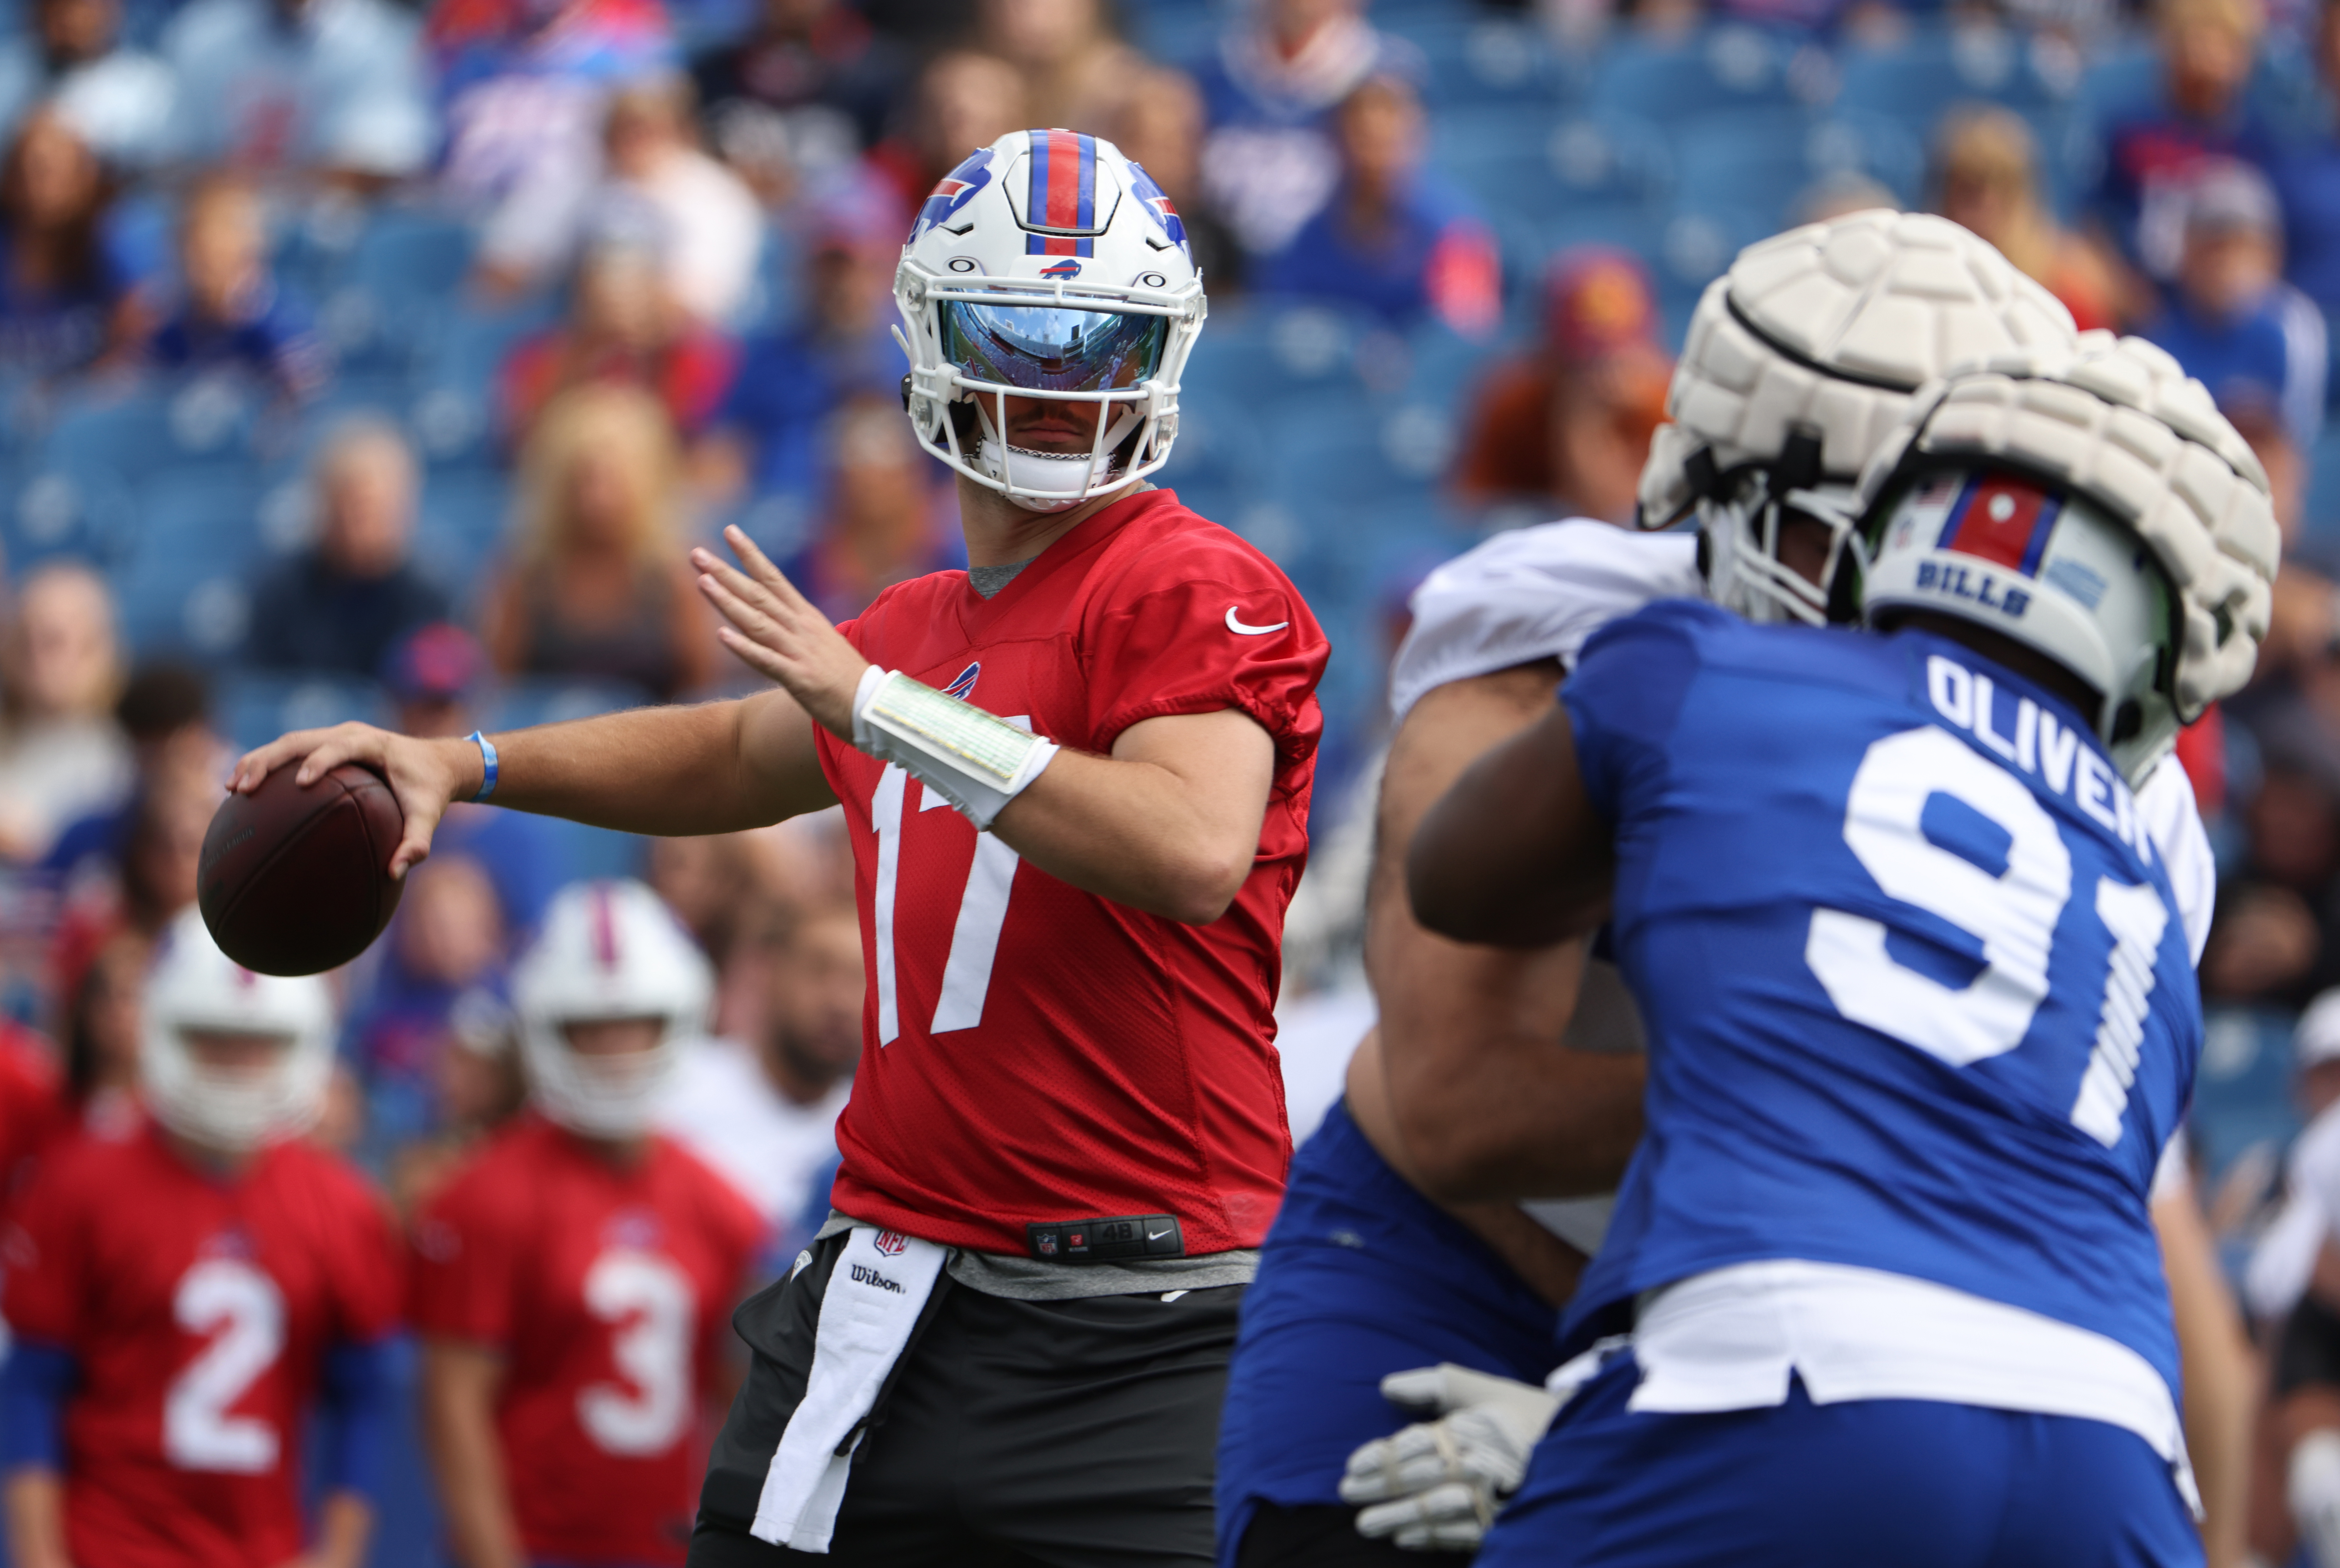 Josh Allen #17 of the Buffalo Bills drops back to throw a pass during training camp at Highmark Stadium on July 31, 2021 in Orchard Park, New York.